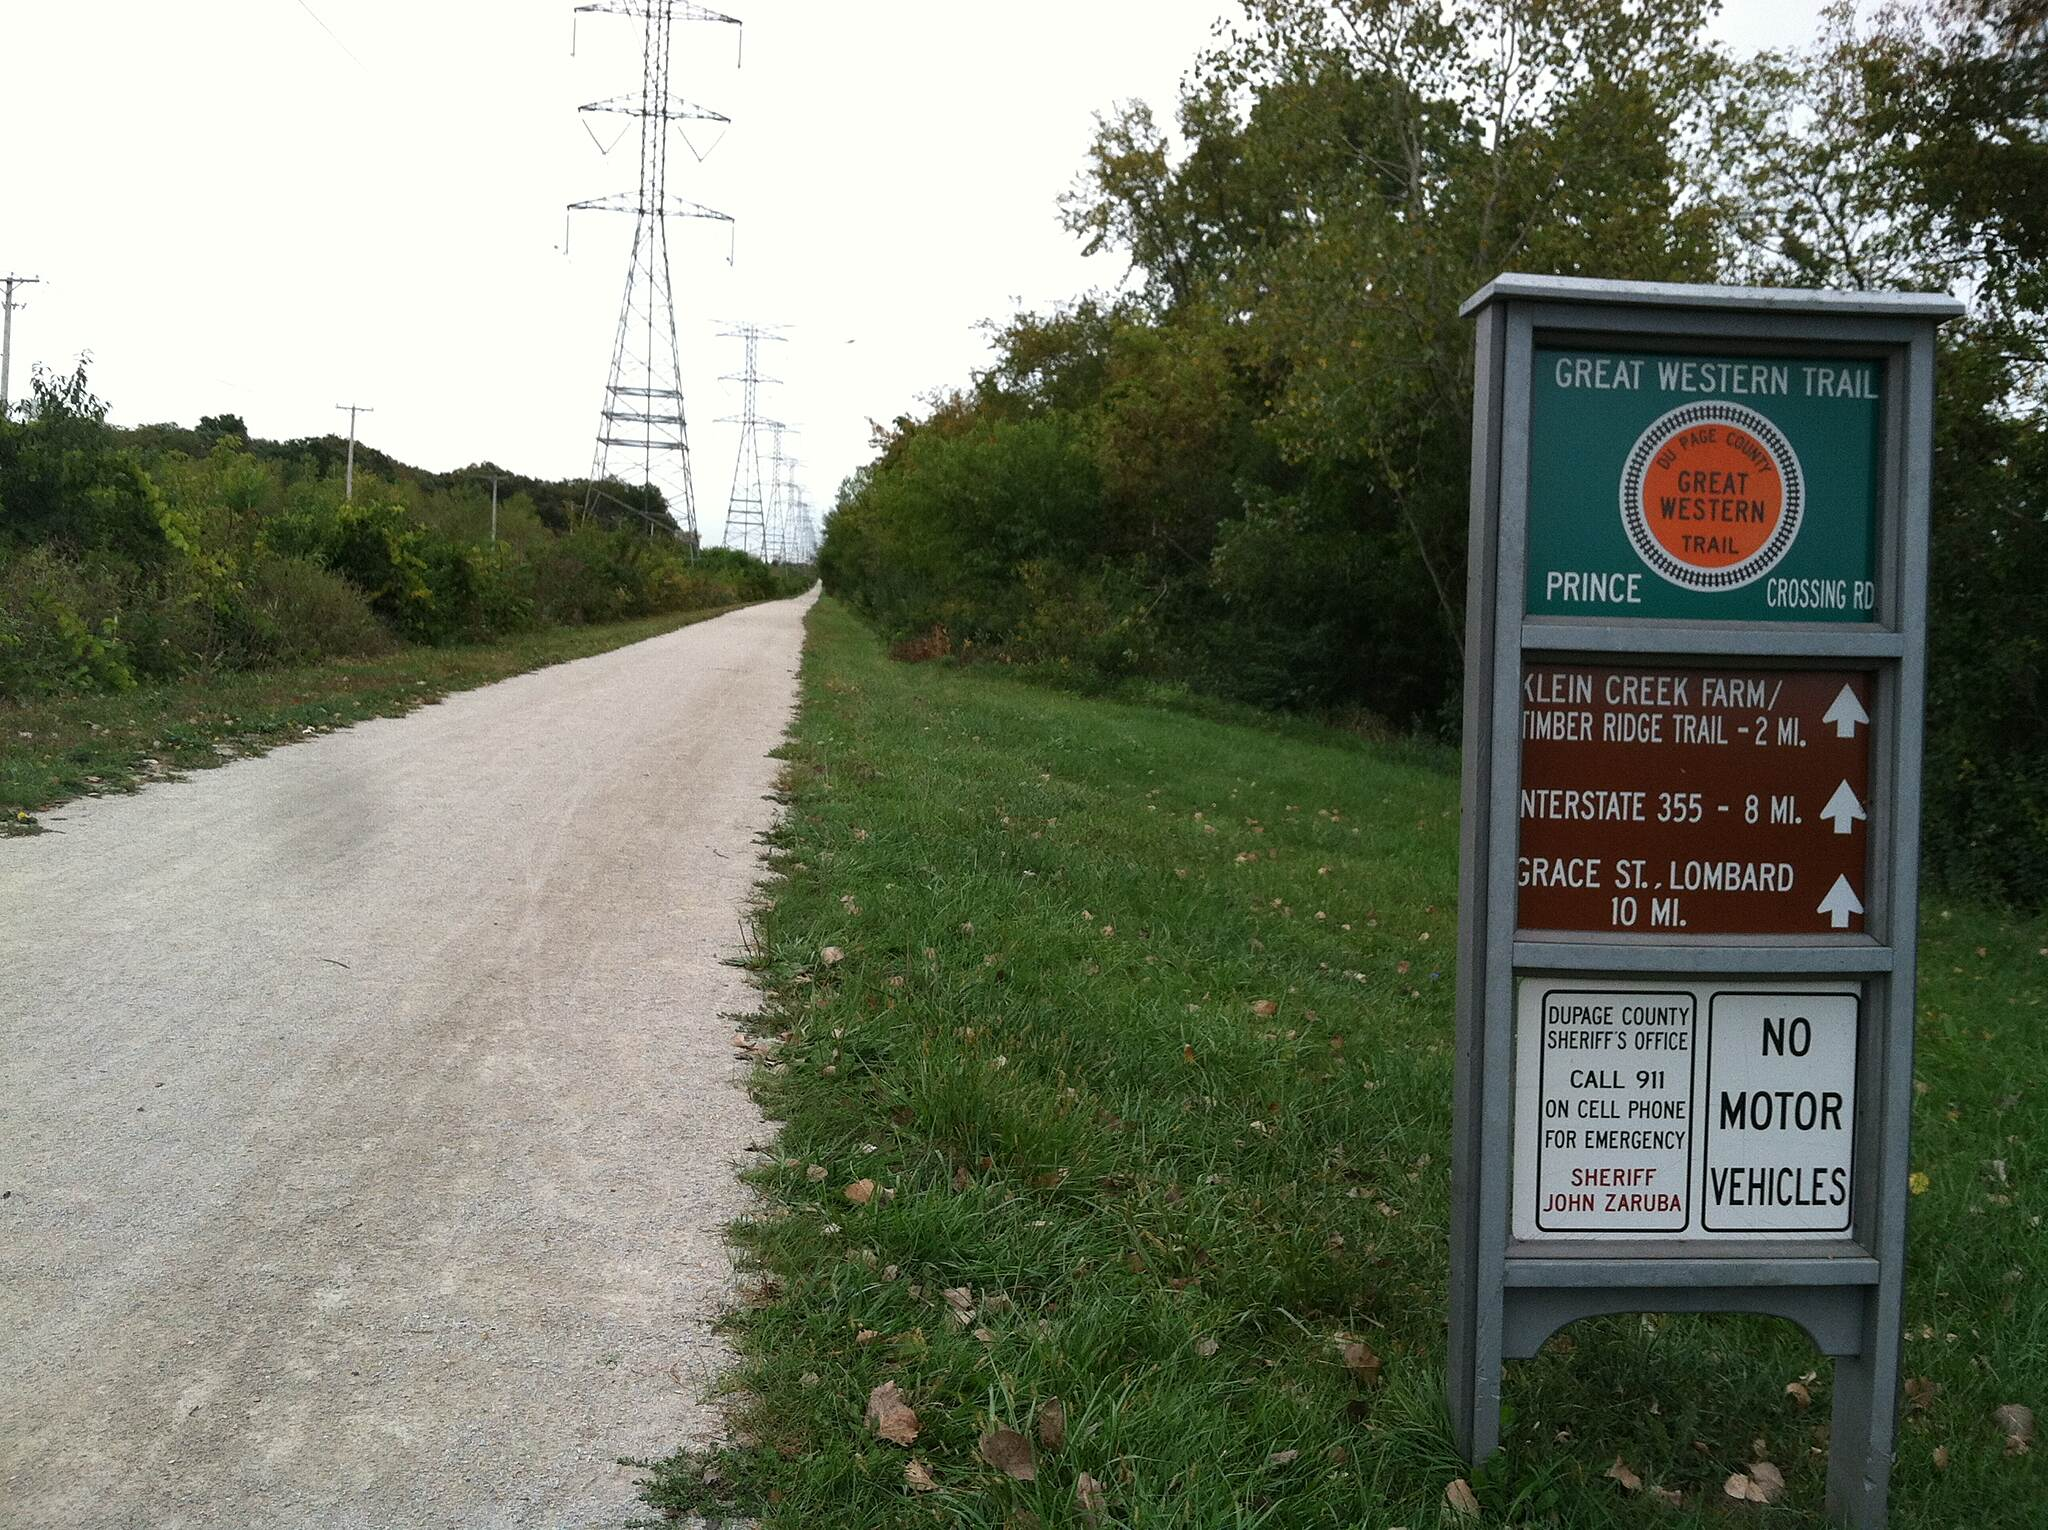 Great Western Trail (DuPage County) GWT Wayfinding